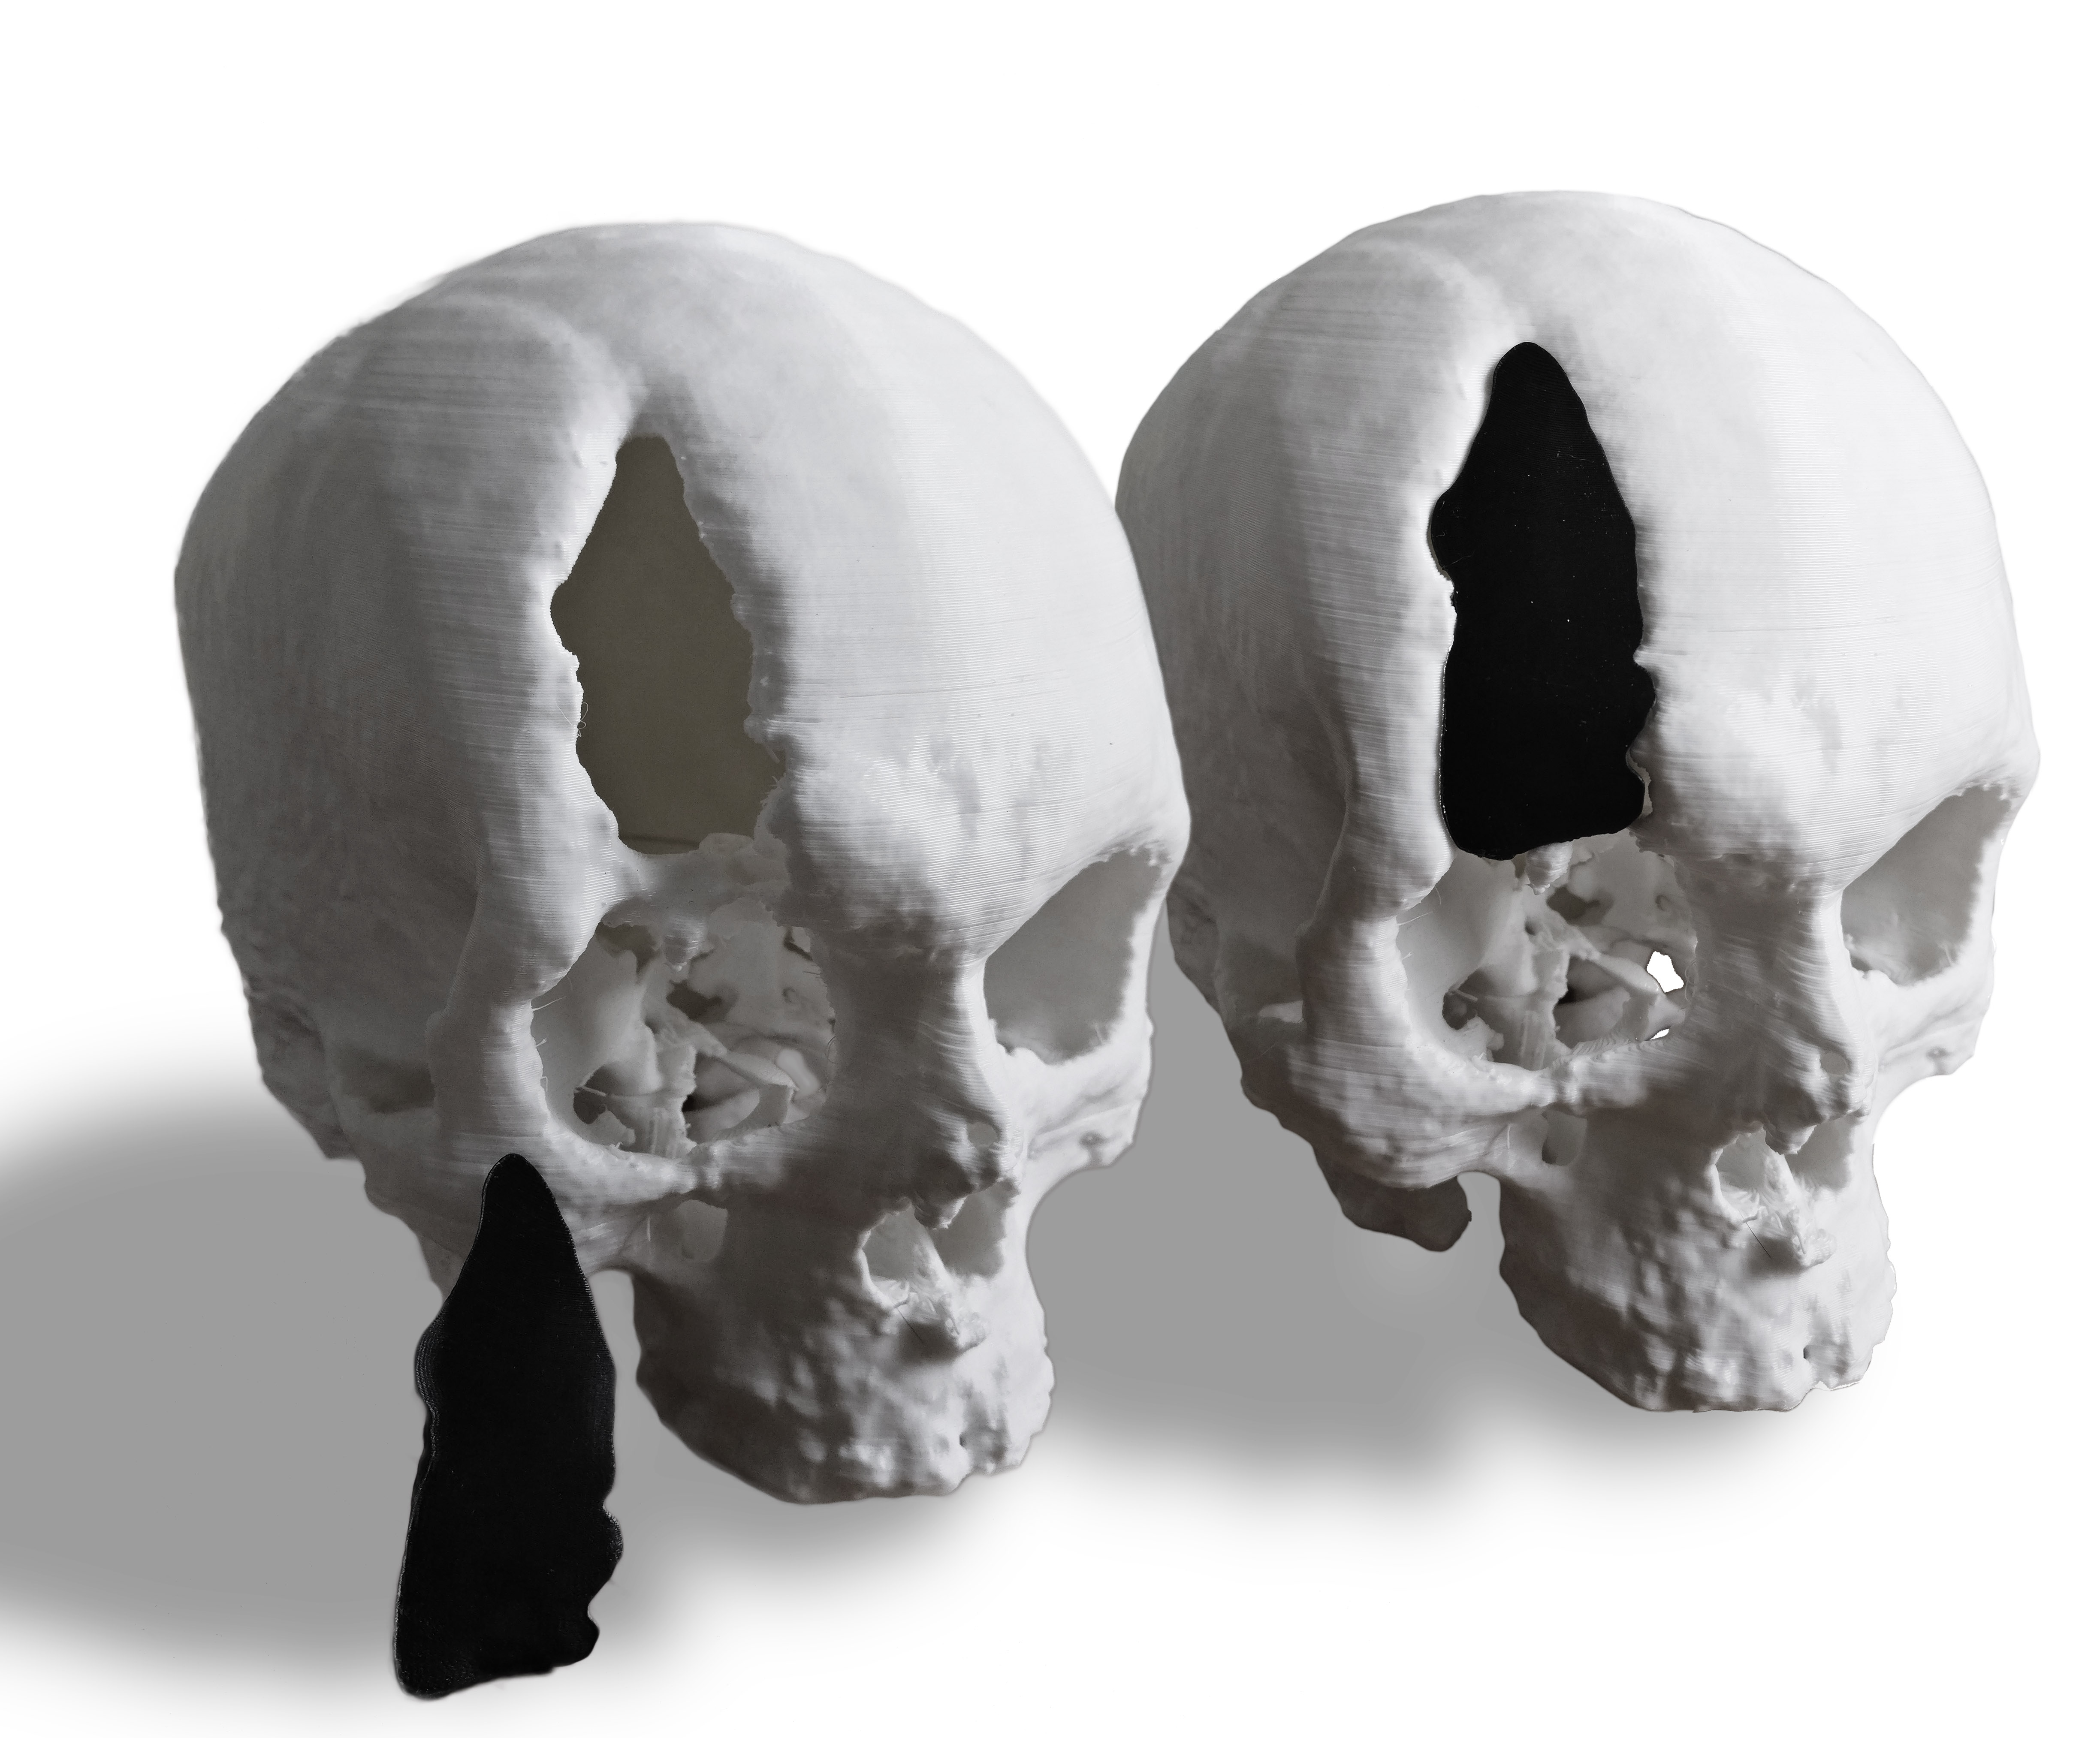 3D Prints of the skull and its implant.